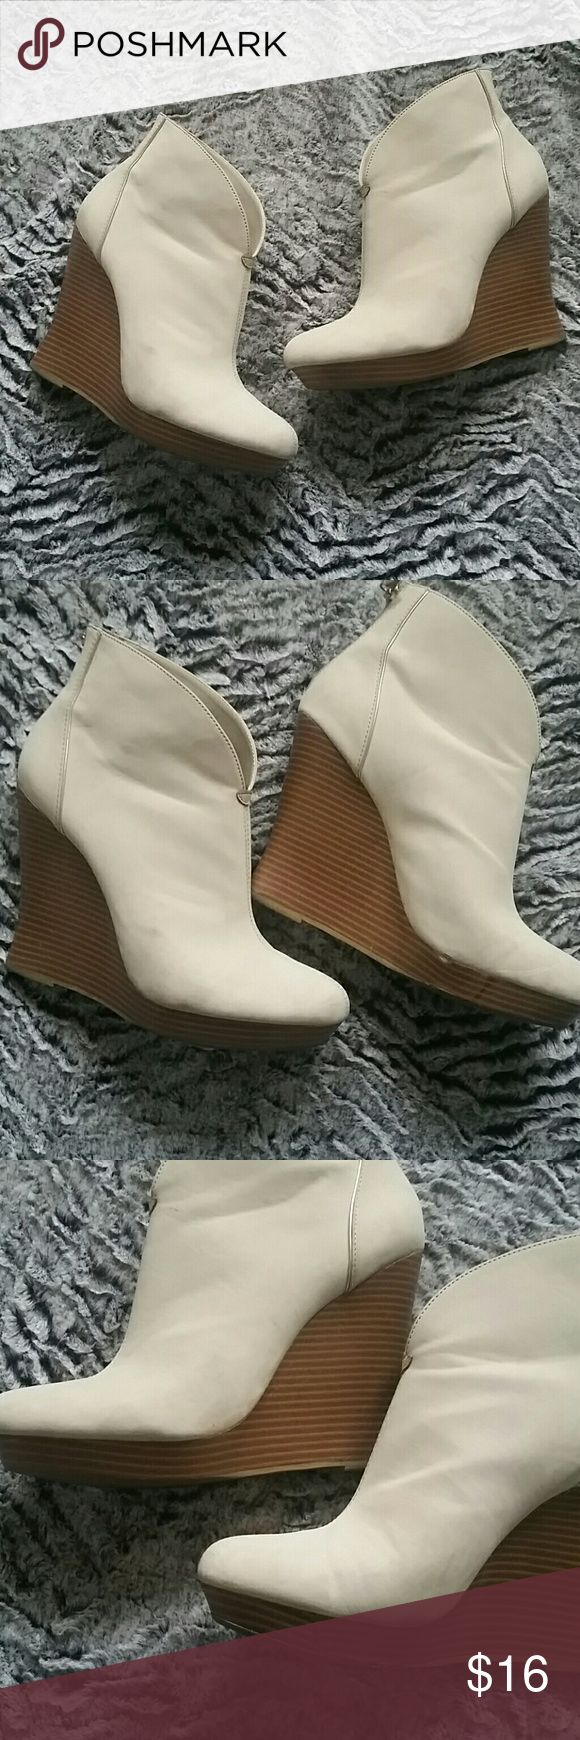 Jennifer Lopez wedges Jennifer Lopez cream colored wedges.  A little dirty a few marks on them and a small scrape that is shown in the pictures.  But still in good condition.  Definitely a lot of life left in them.  Heel height is 4 inches with a 3/4 inch platform. Jennifer Lopez Shoes Wedges